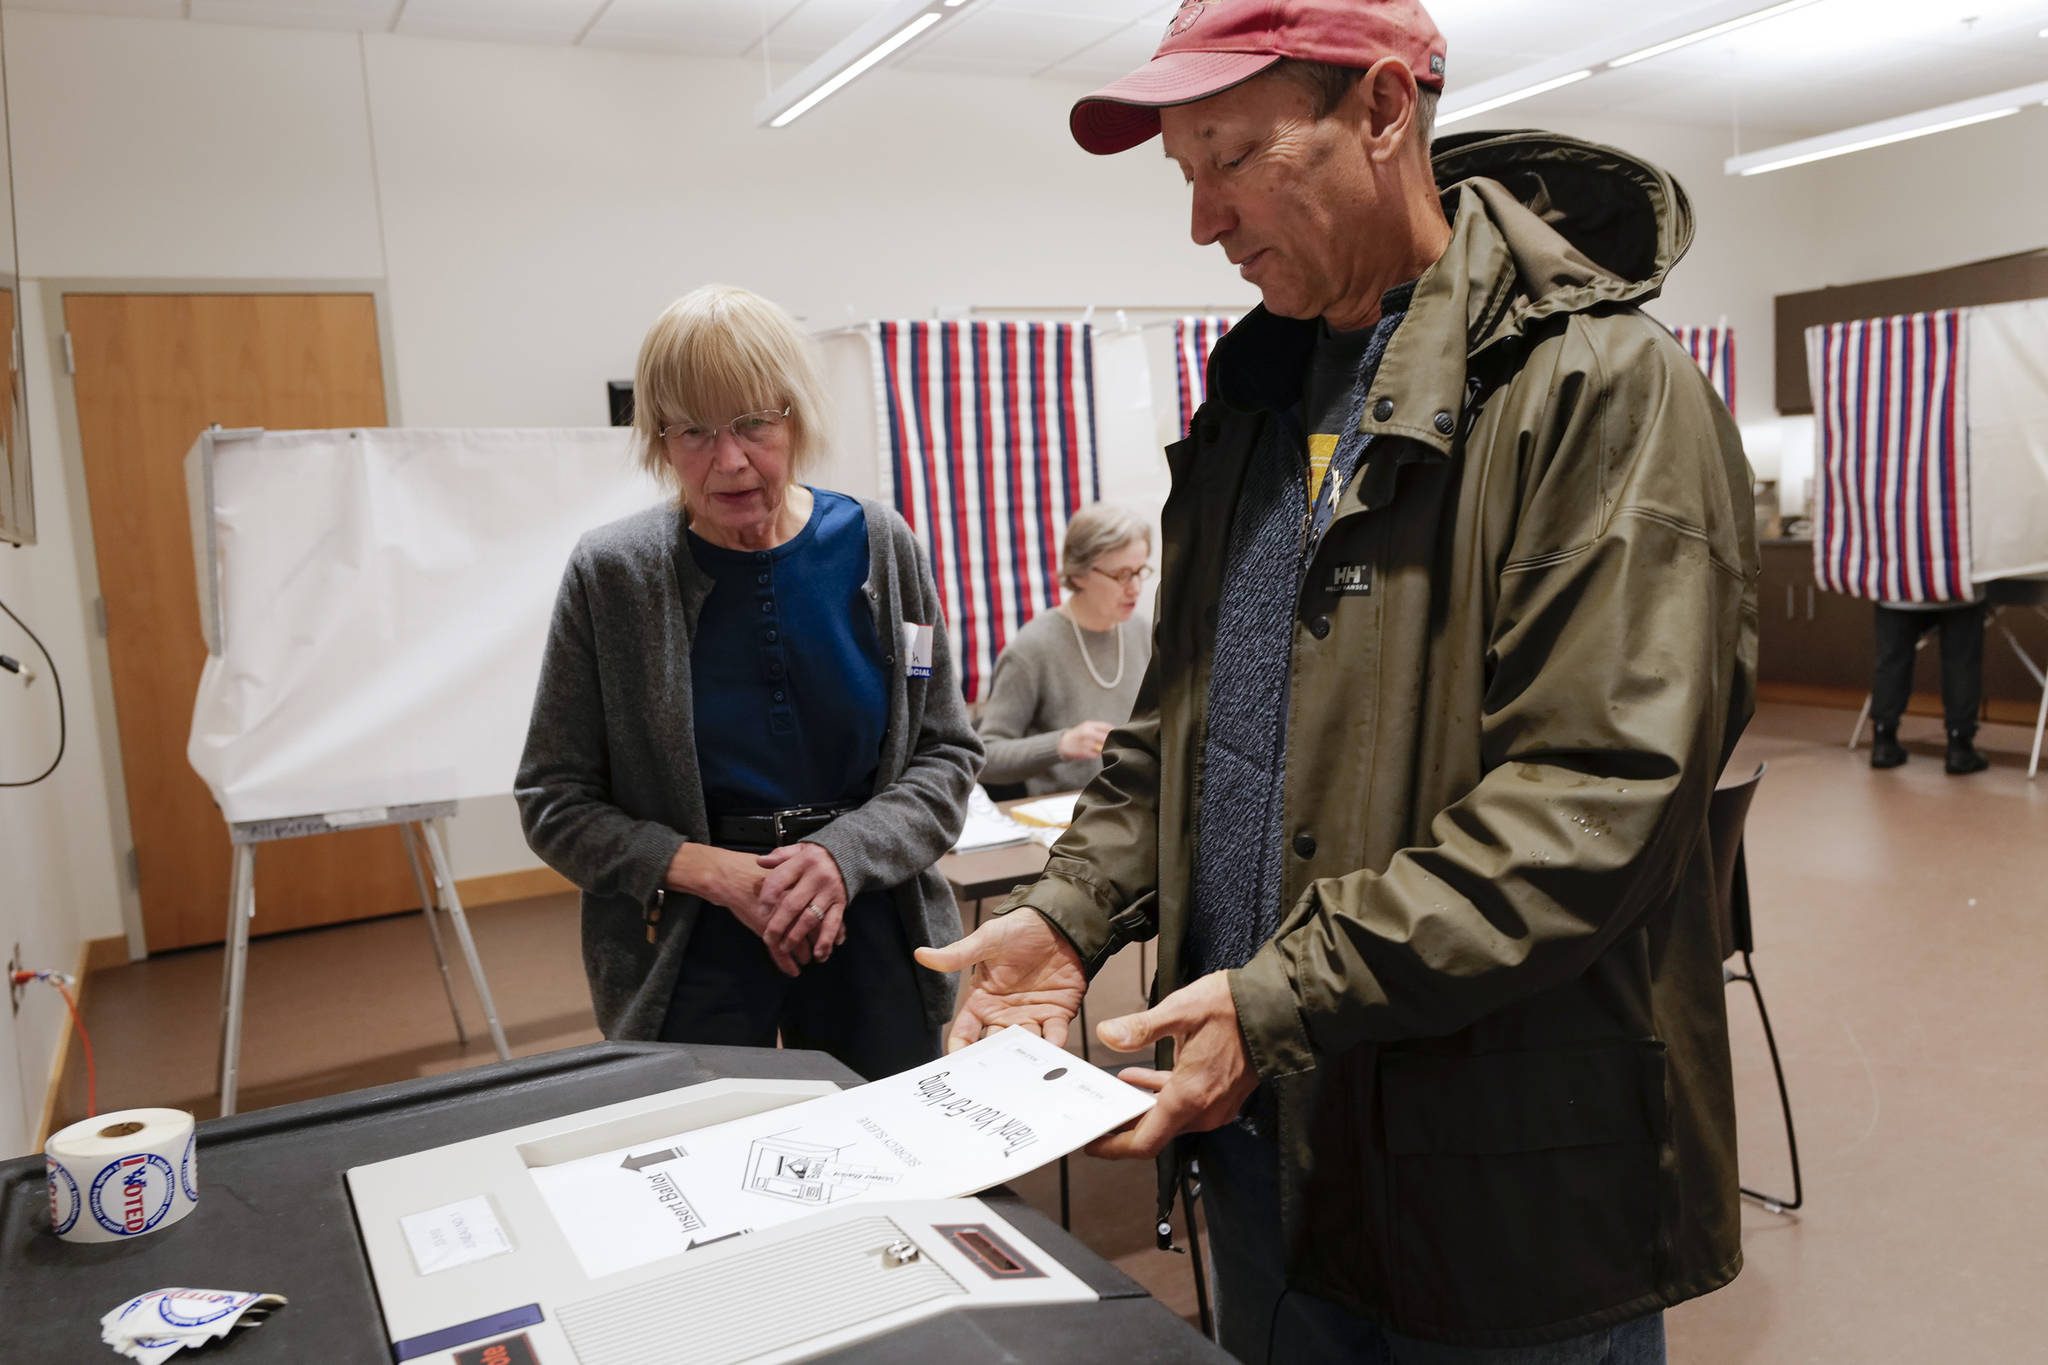 Election official Deborah Behr watches as Doug Woodby enters his ballot into a voting machine at the APK State Library, Archives and Museum Building on Tuesday, Oct. 1, 2019. (Michael Penn   Juneau Empire)